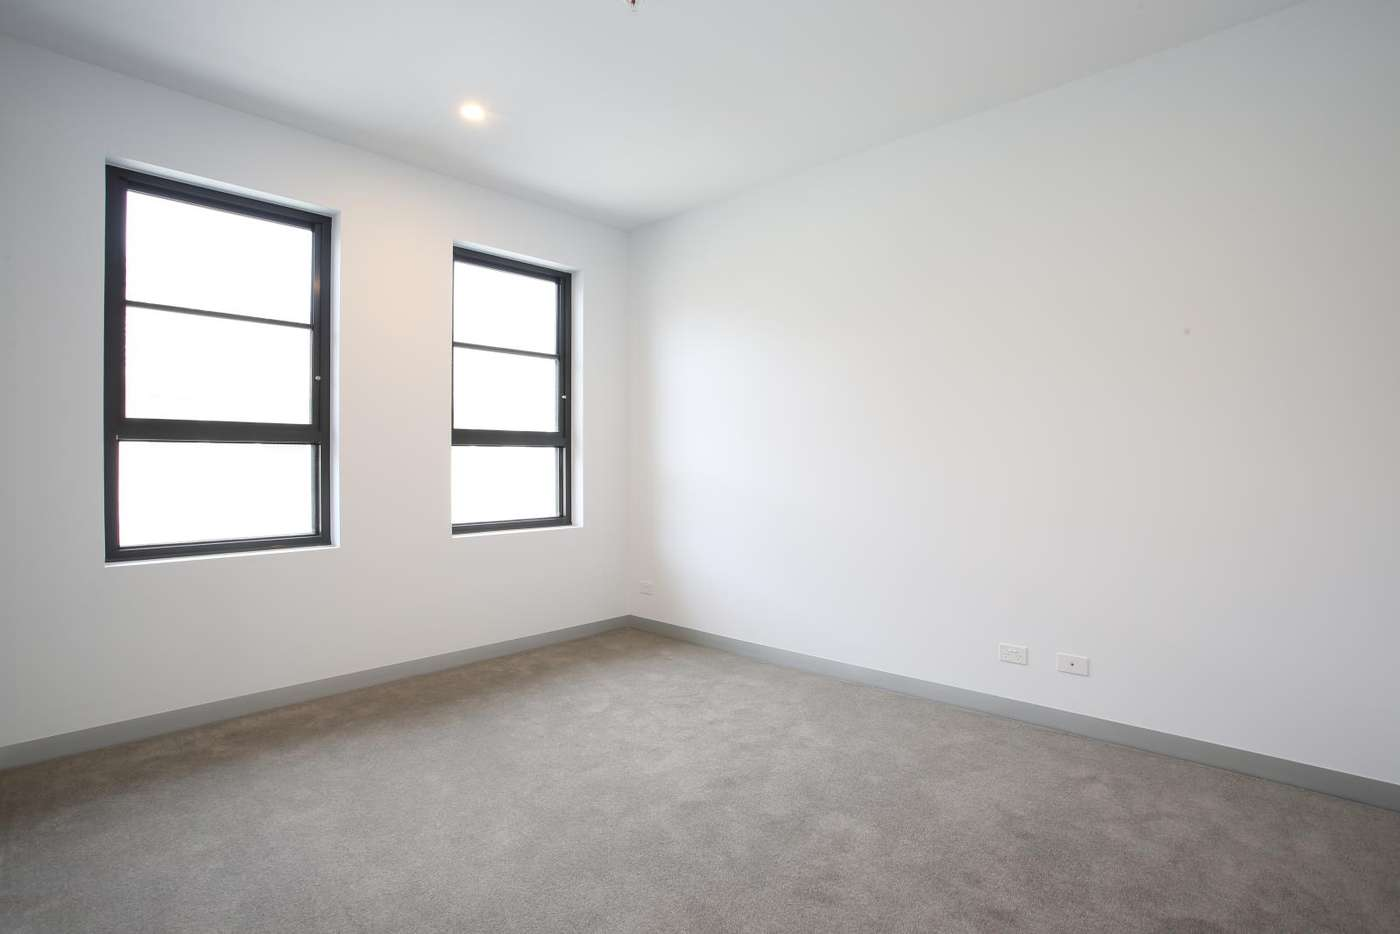 Sixth view of Homely unit listing, 103/365-367 Neerim Road, Carnegie VIC 3163